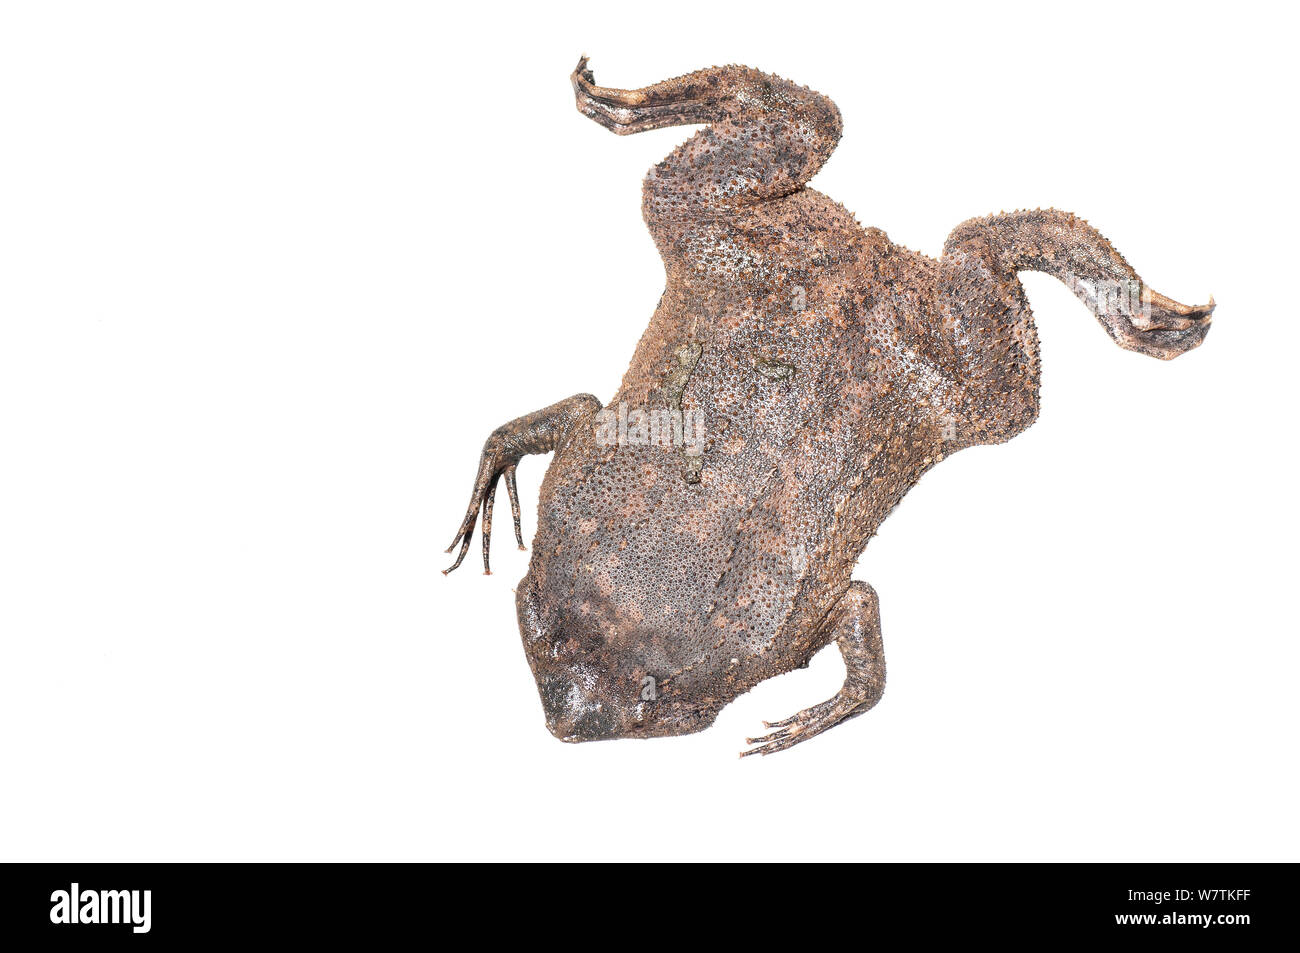 Pipa Pipa Toad Stock Photos & Pipa Pipa Toad Stock Images